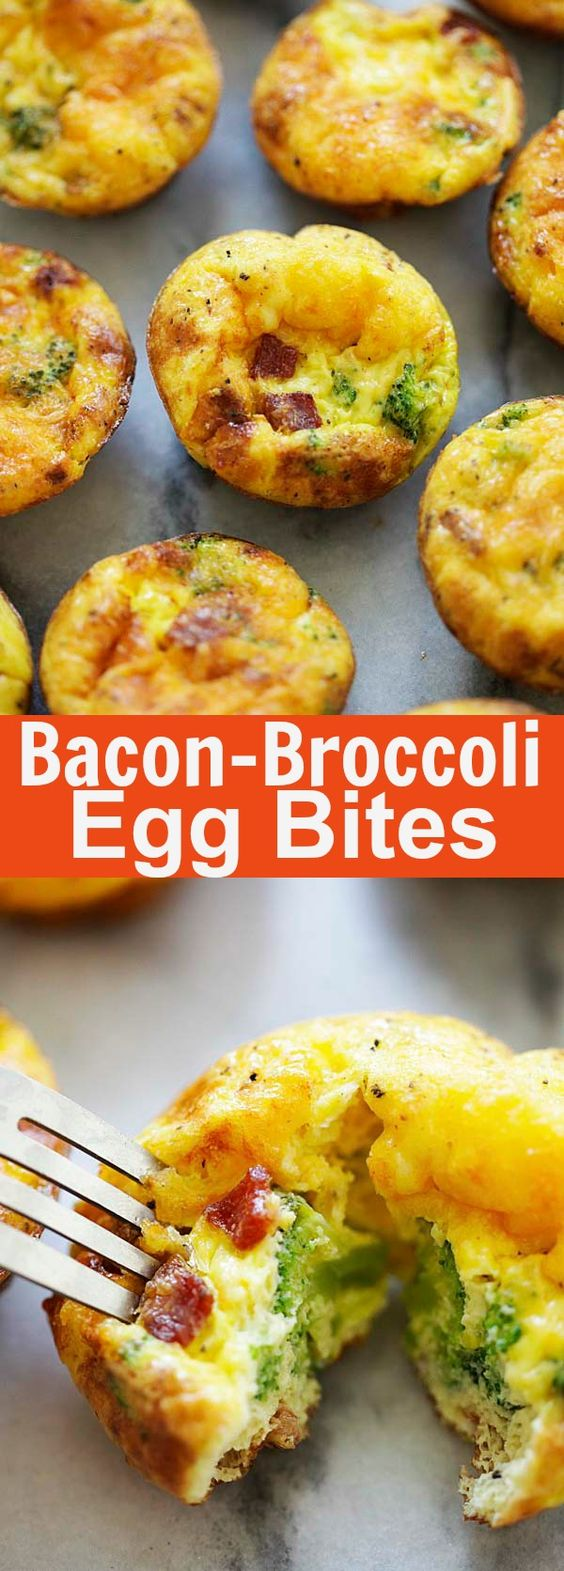 Bacon Broccoli Egg Bites - healthy, wholesome and delicious breakfast egg bites with fresh broccoli, crispy bacon and eggs. Made in oven, these baked egg bites are better than Starbucks | rasamalaysia.com